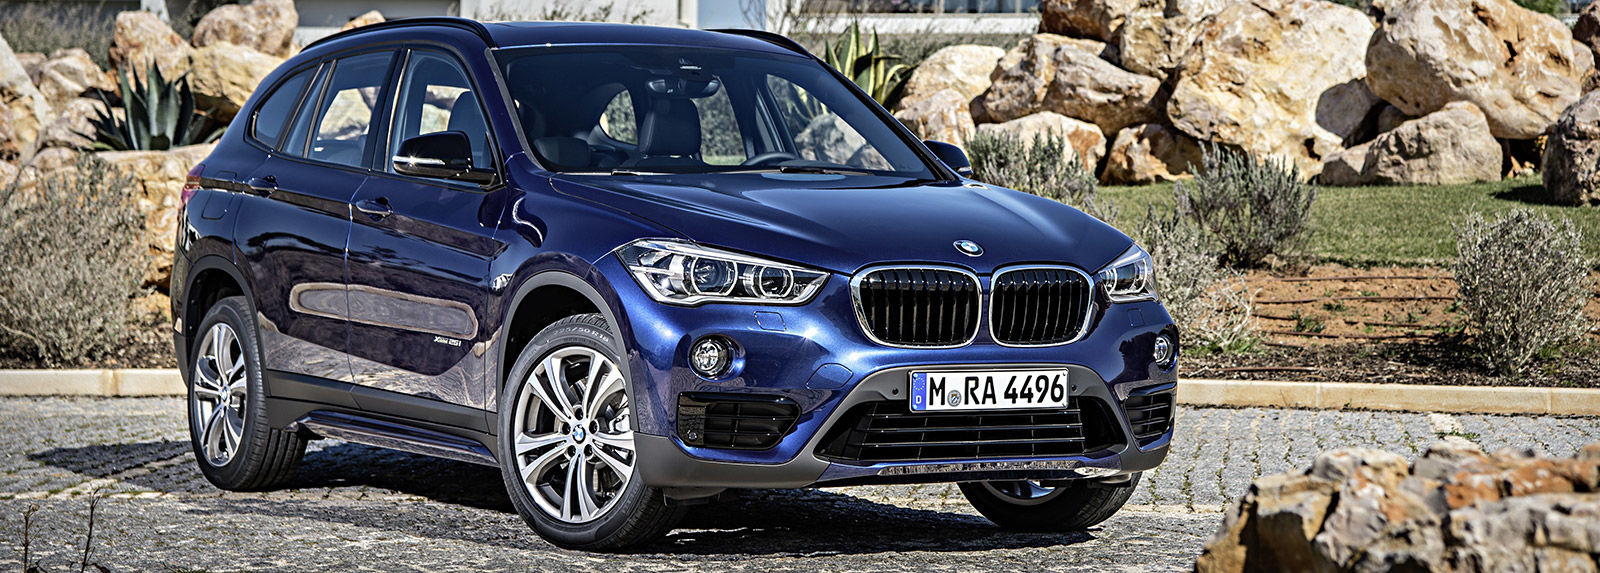 bmw x1 sizes and dimensions guide carwow. Black Bedroom Furniture Sets. Home Design Ideas